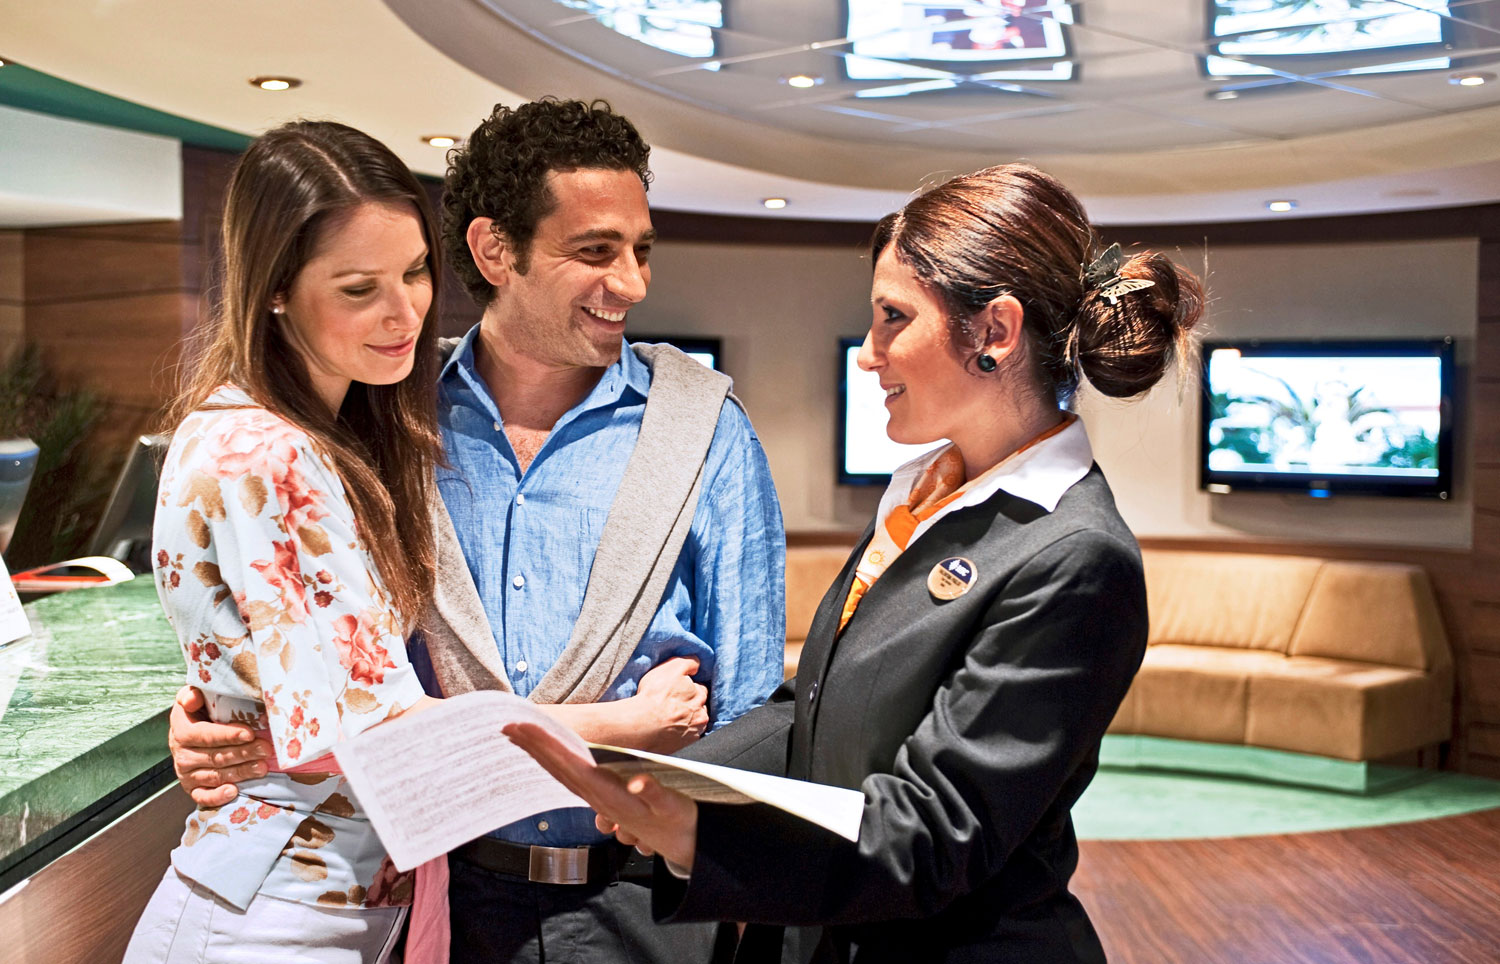 MSC Voyagers Club 'status match' offers free perks for